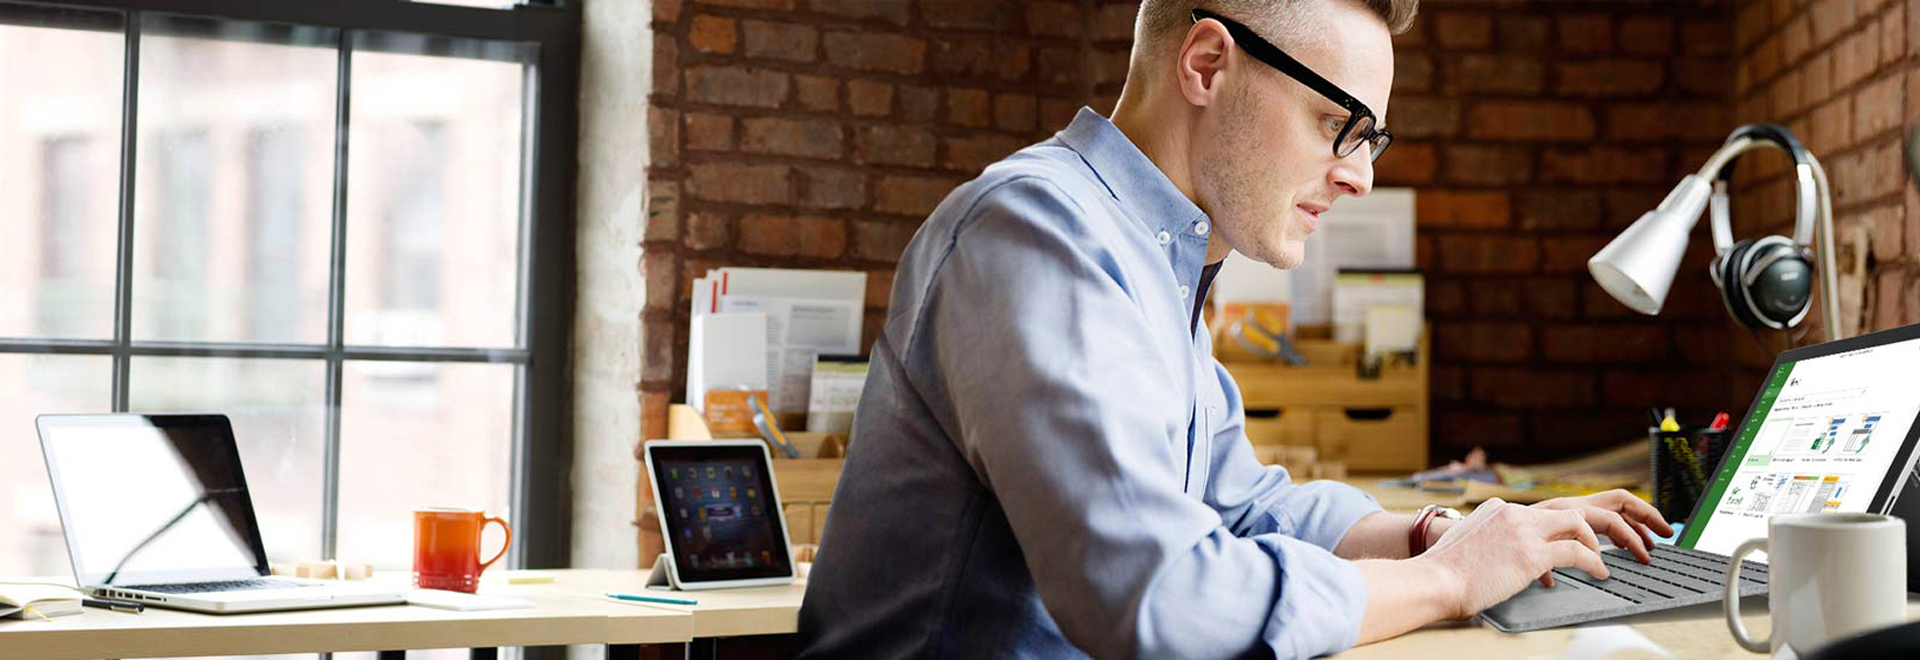 A man sitting at a desk and working on a Surface tablet, using Microsoft Project.